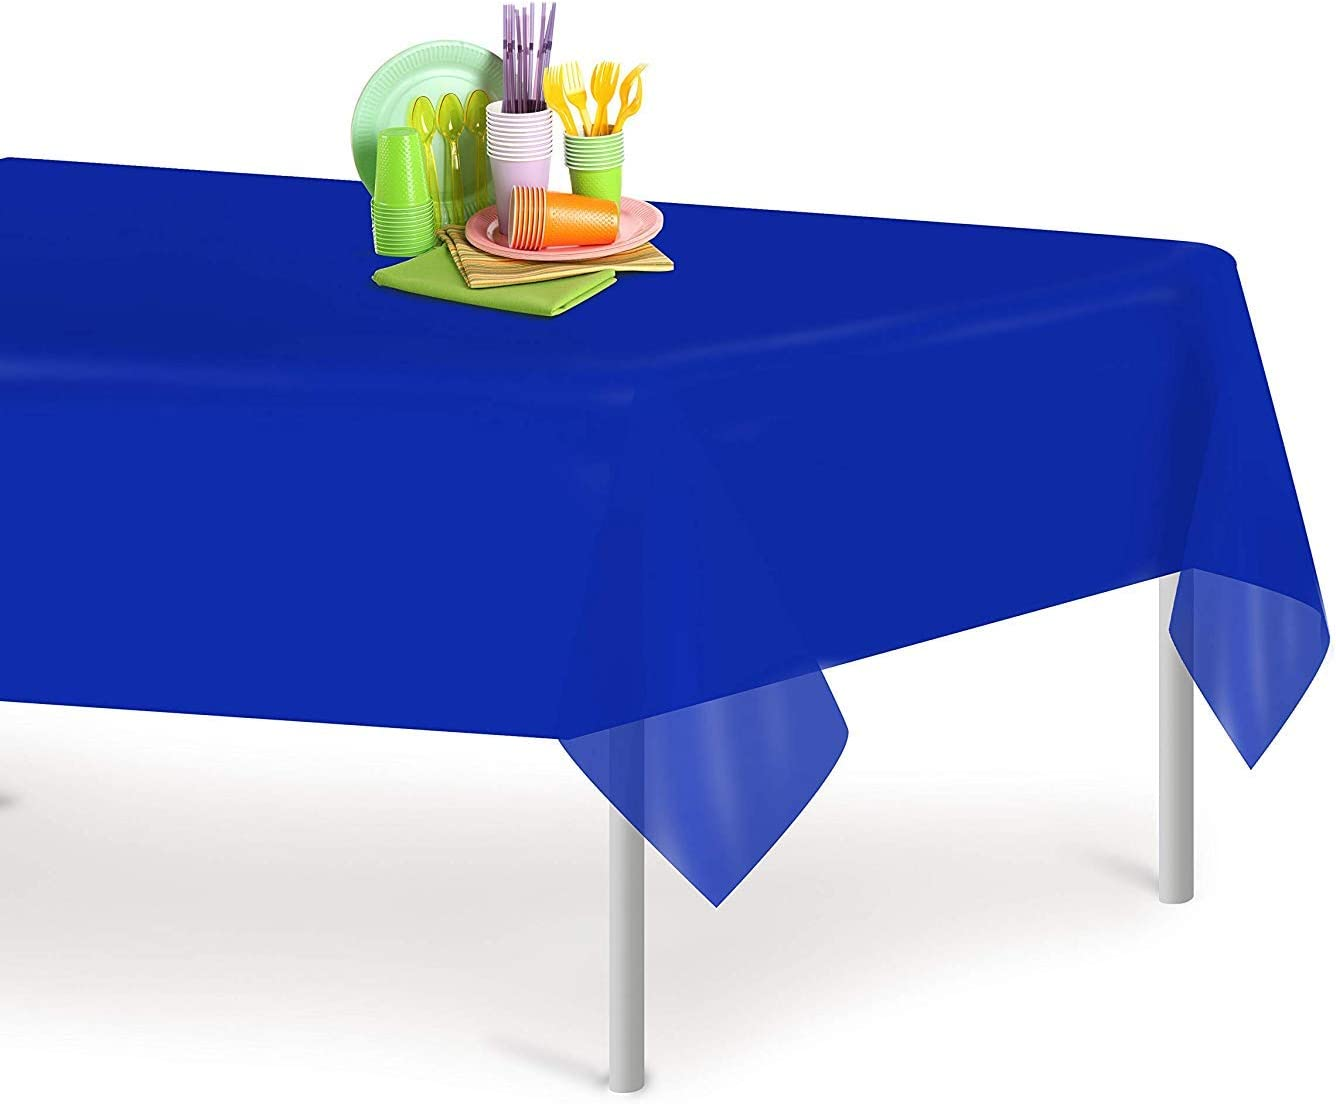 Premium Quality Disposable Rectangle Table Cloths - Blue Plastic Tablecloth for All Parties, 6pack (54 x 108)